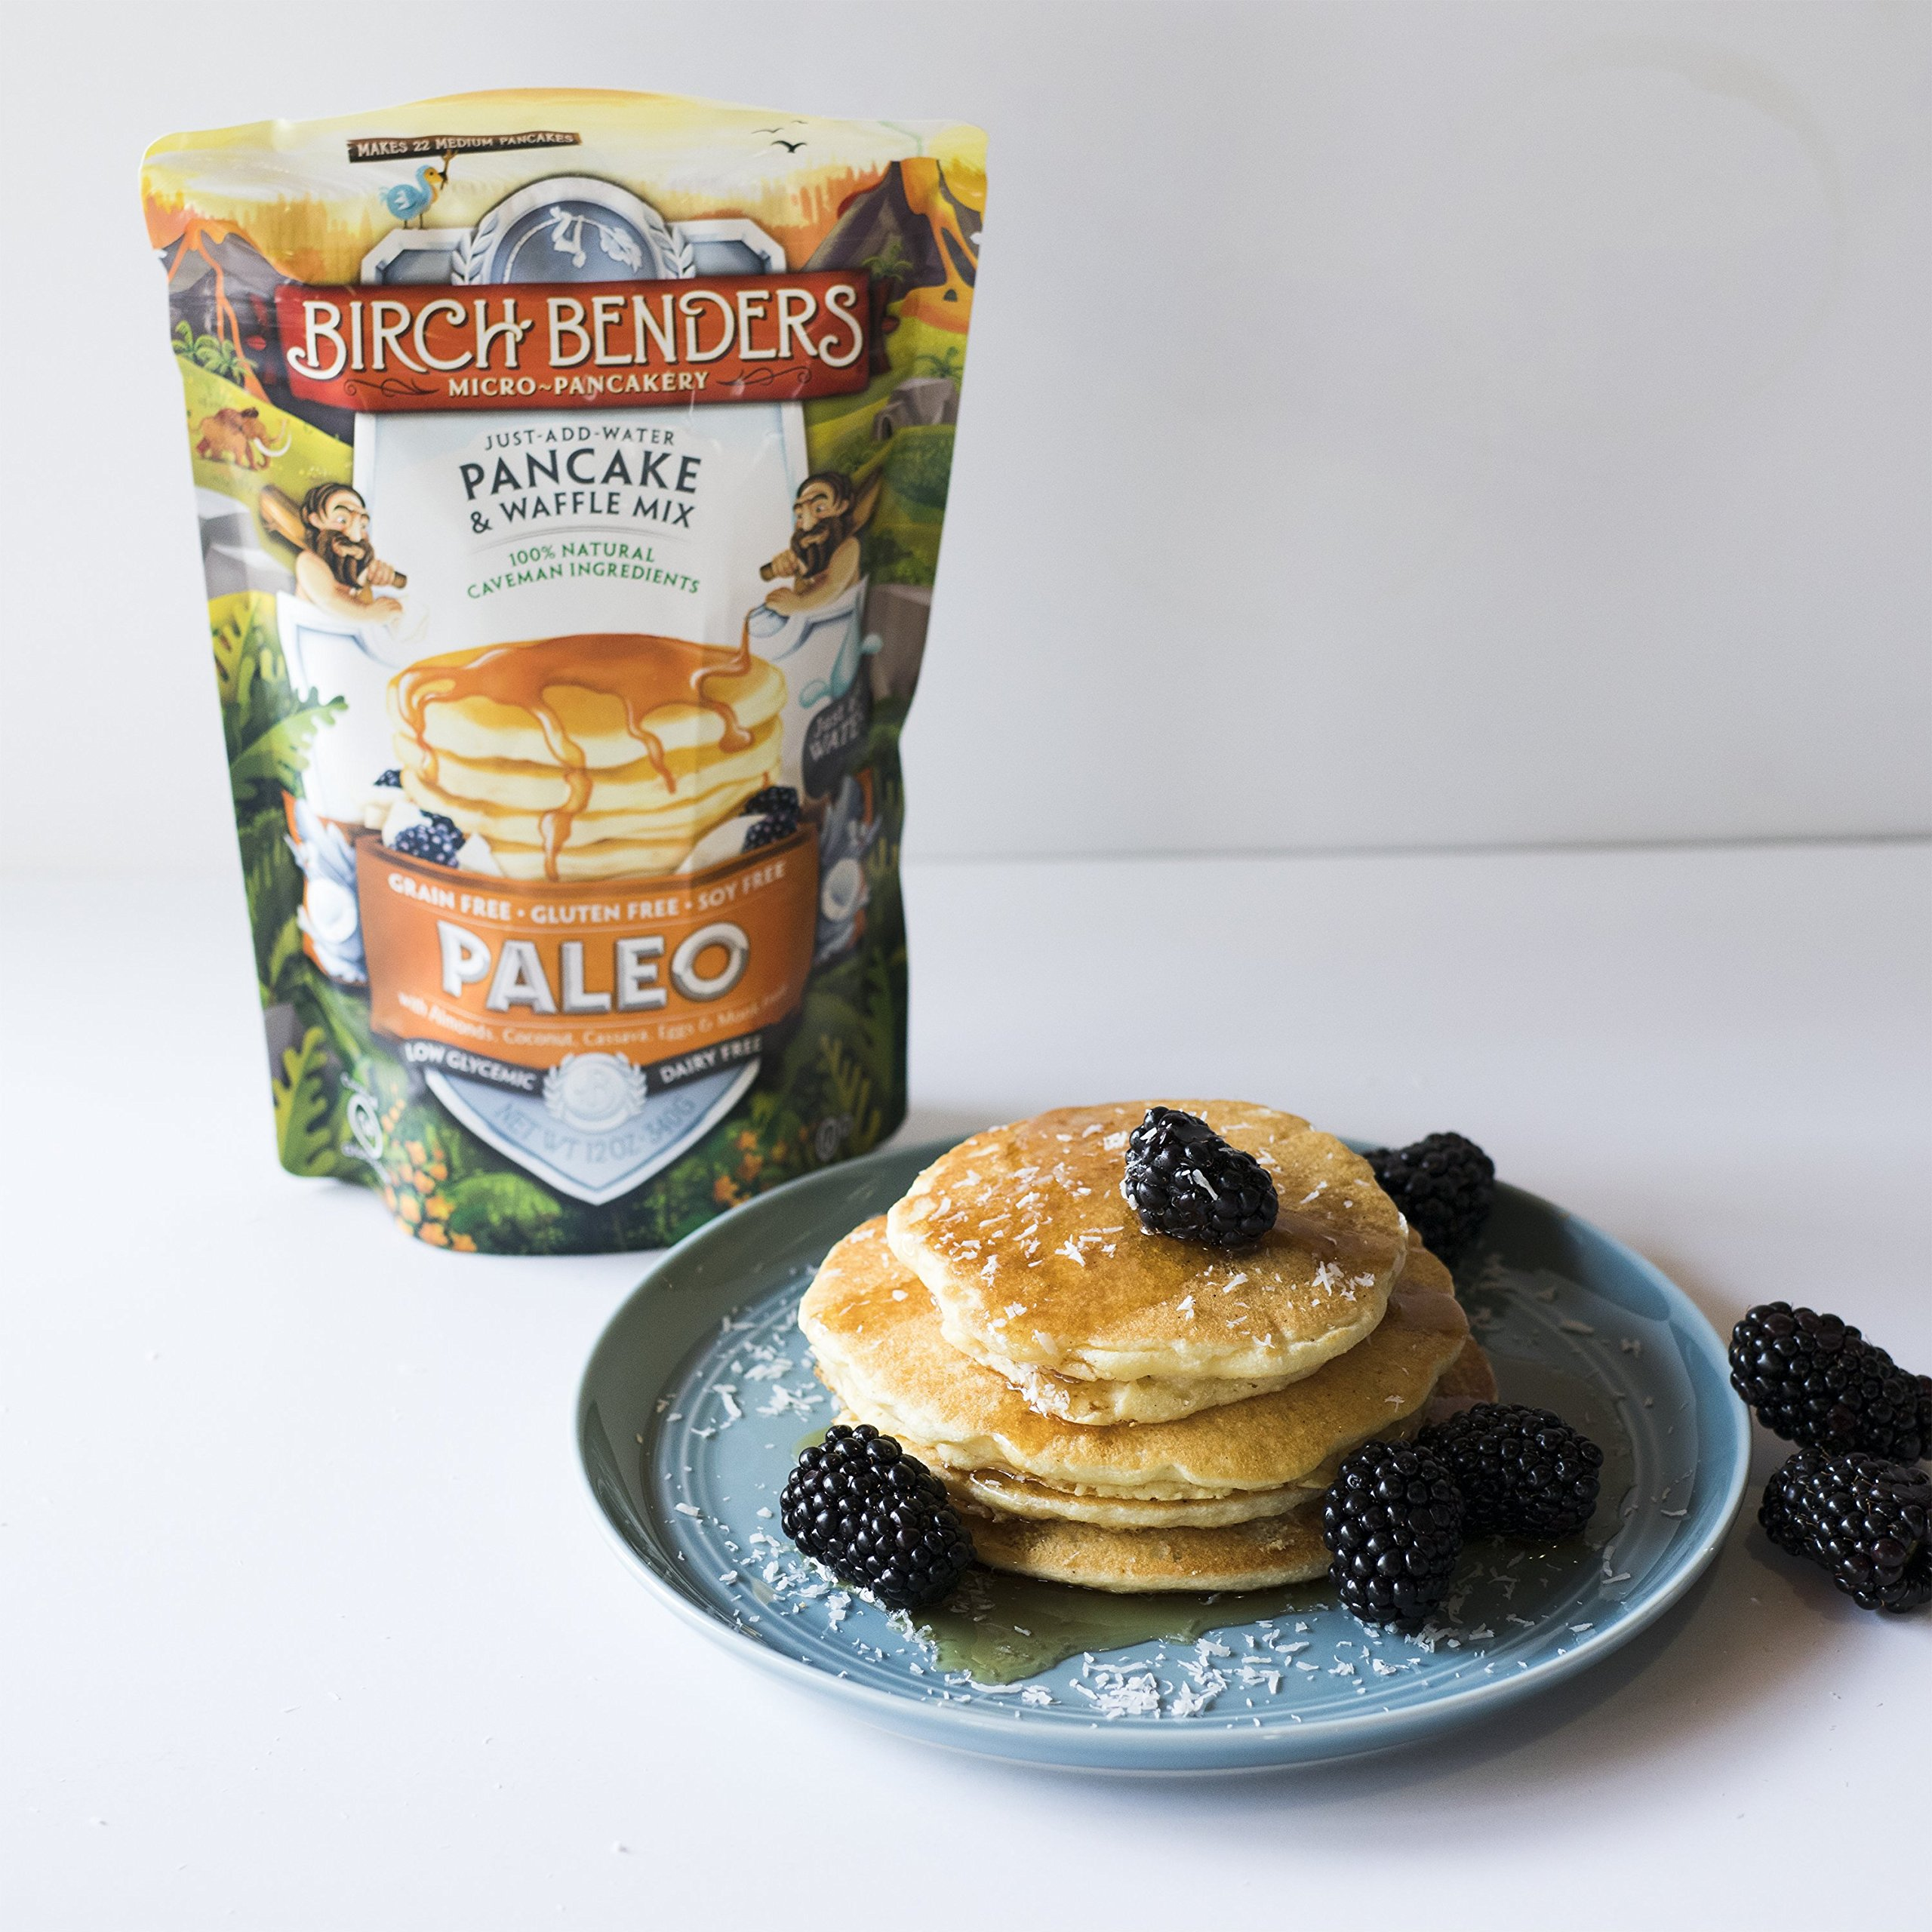 Paleo Pancake and Waffle Mix by Birch Benders, Low-Carb, High Protein, High Fiber, Gluten-free, Low Glycemic, Prebiotic, Made with Cassava, Coconut and Almond Flour, 3-pack (42oz each) by Birch Benders (Image #3)